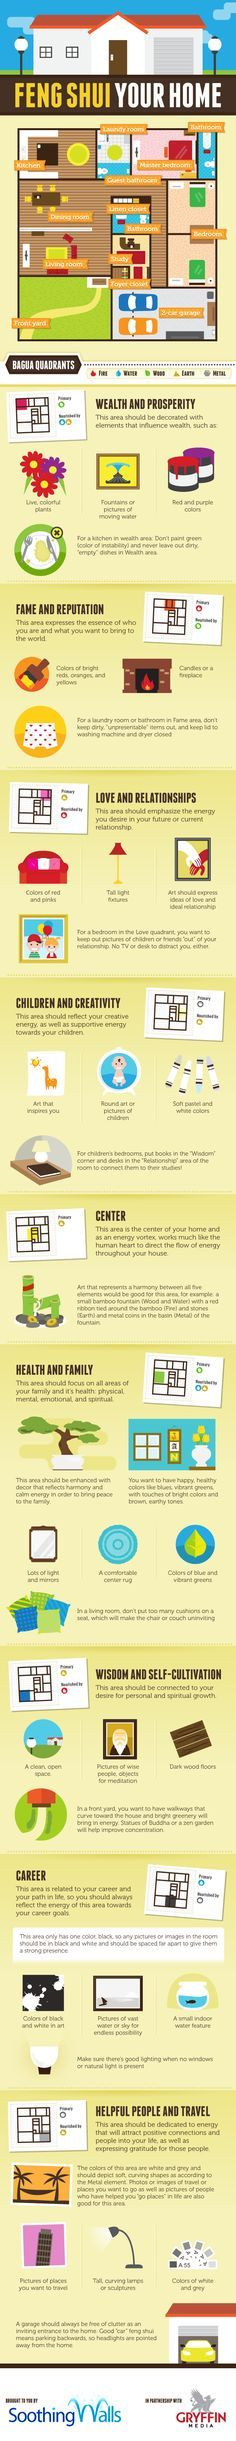 Image of the Week: Feng Shui Your #Home [#Infographic]   HomeAdvisor HomeSource Blog